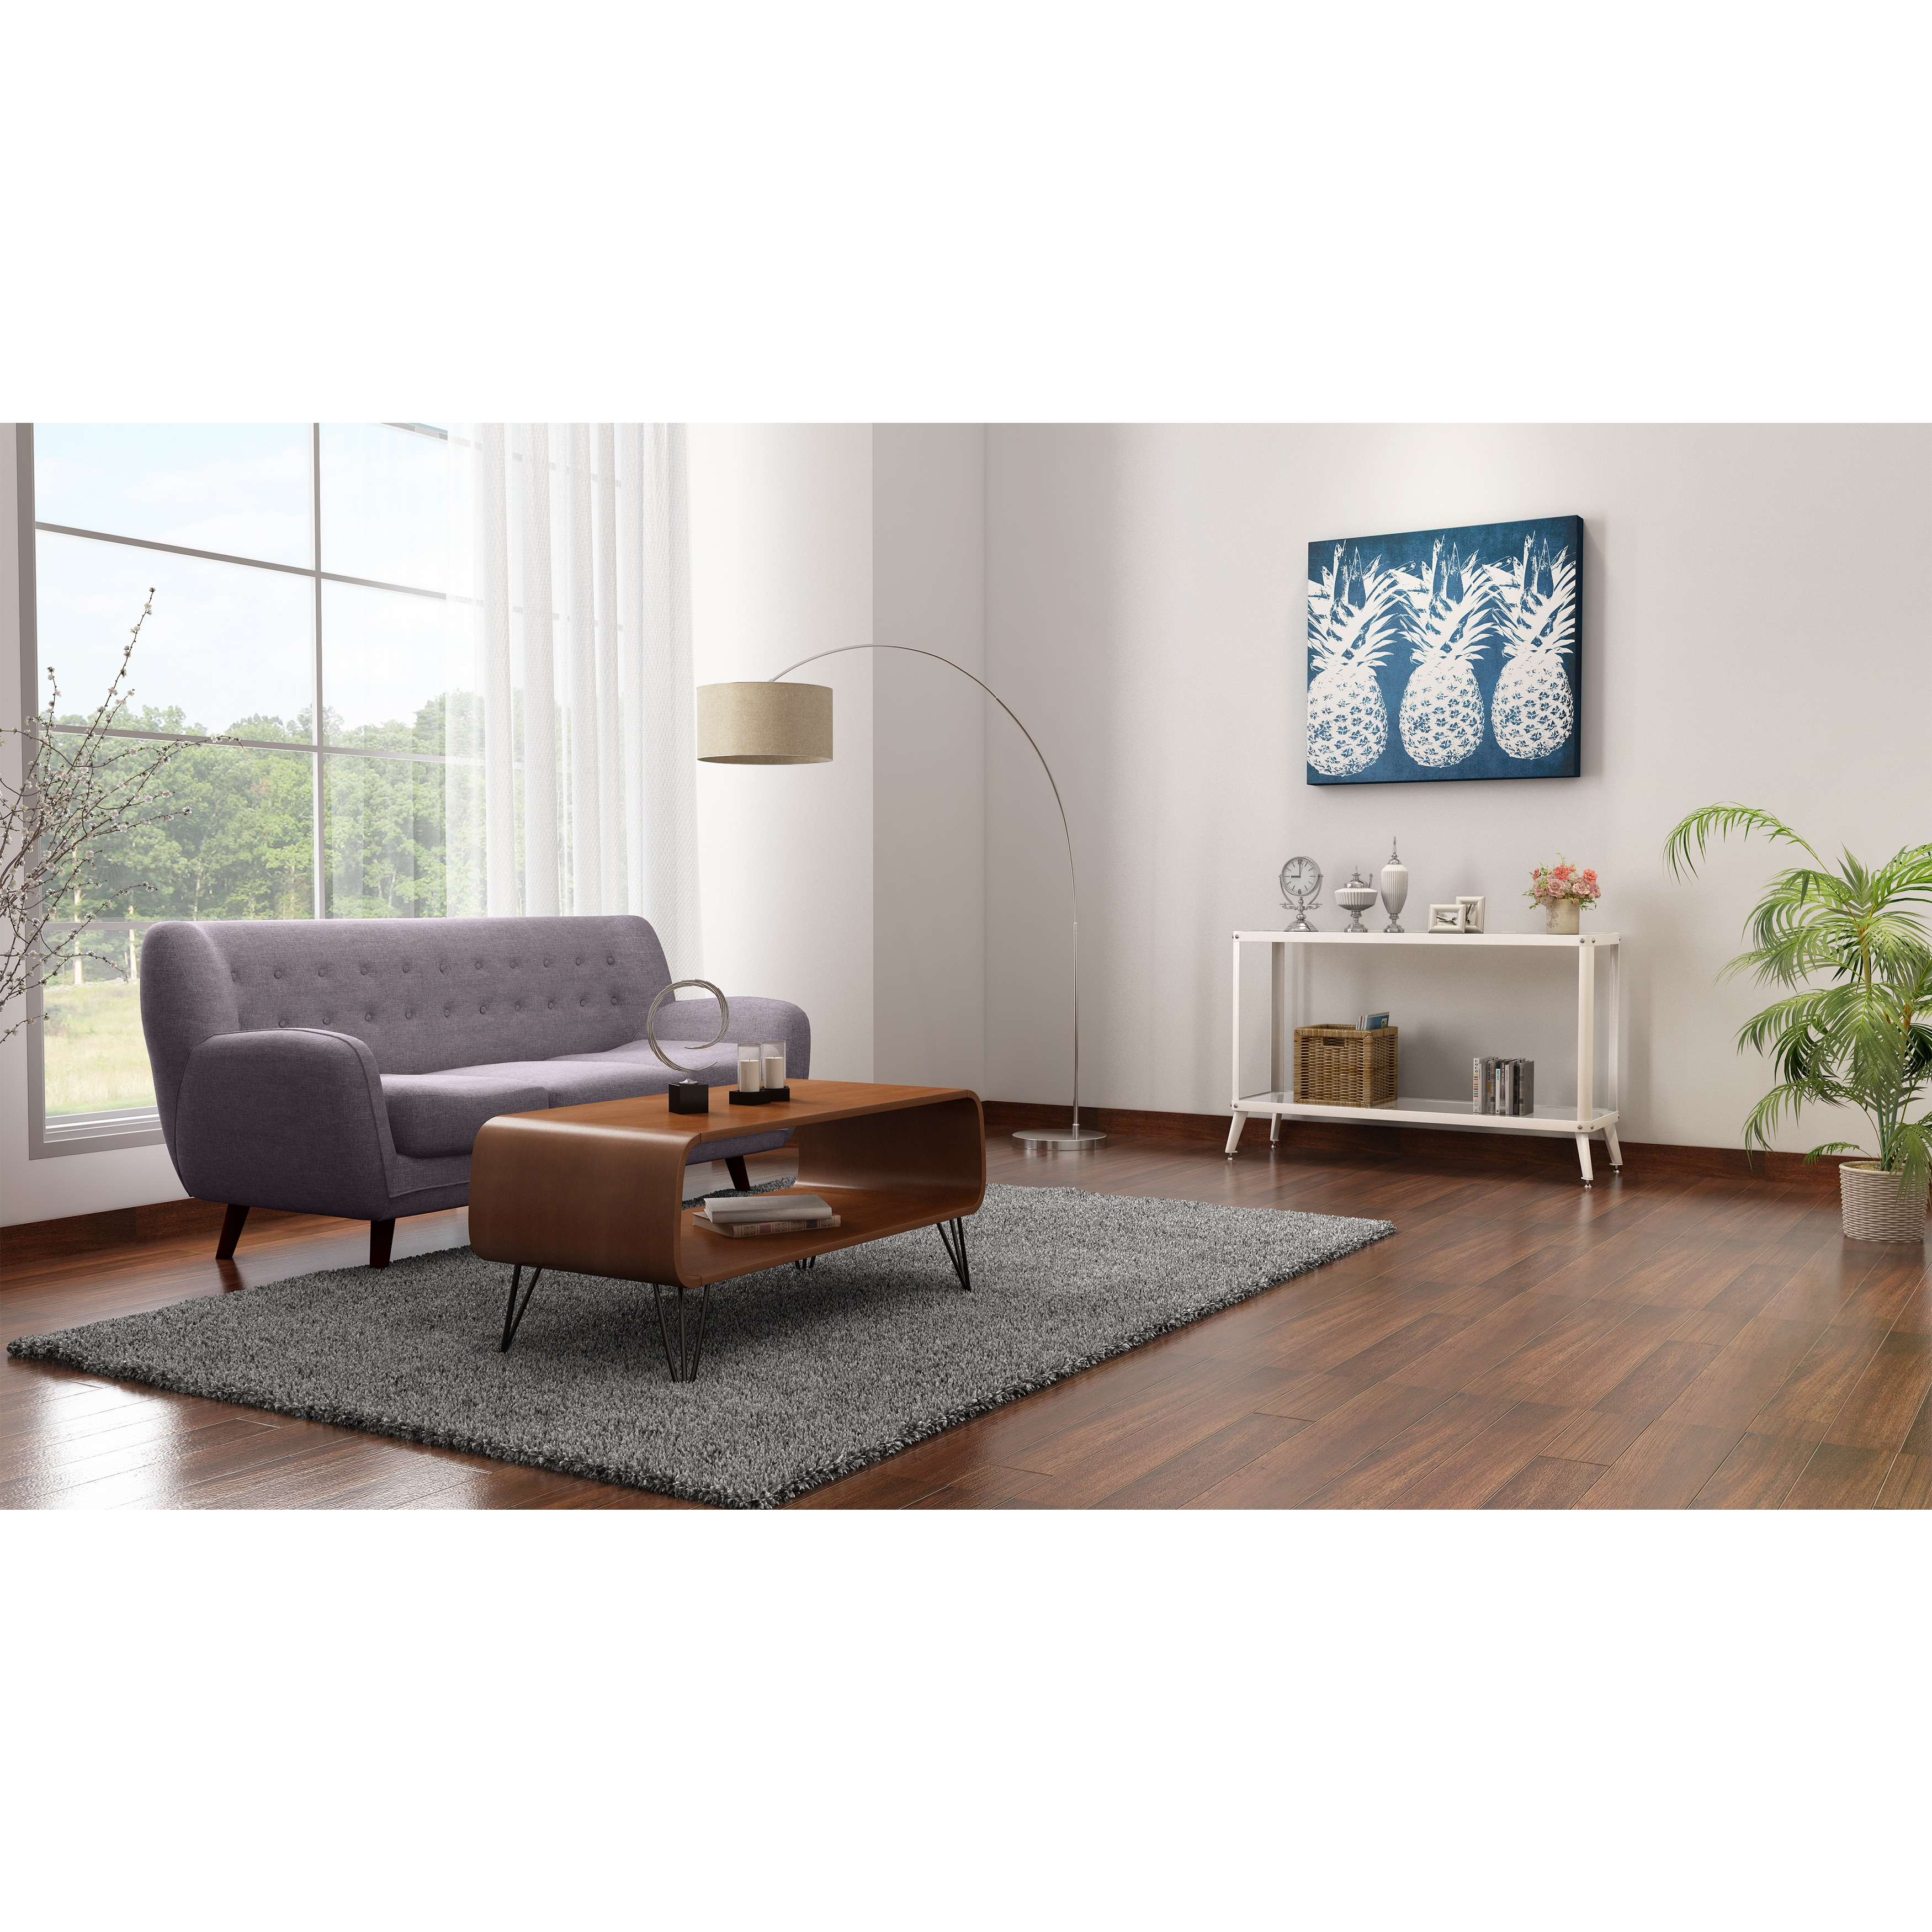 Mid Century Modern Coffee Table With Storage: Low Mid Century Coffee Table For Living Room With Storage